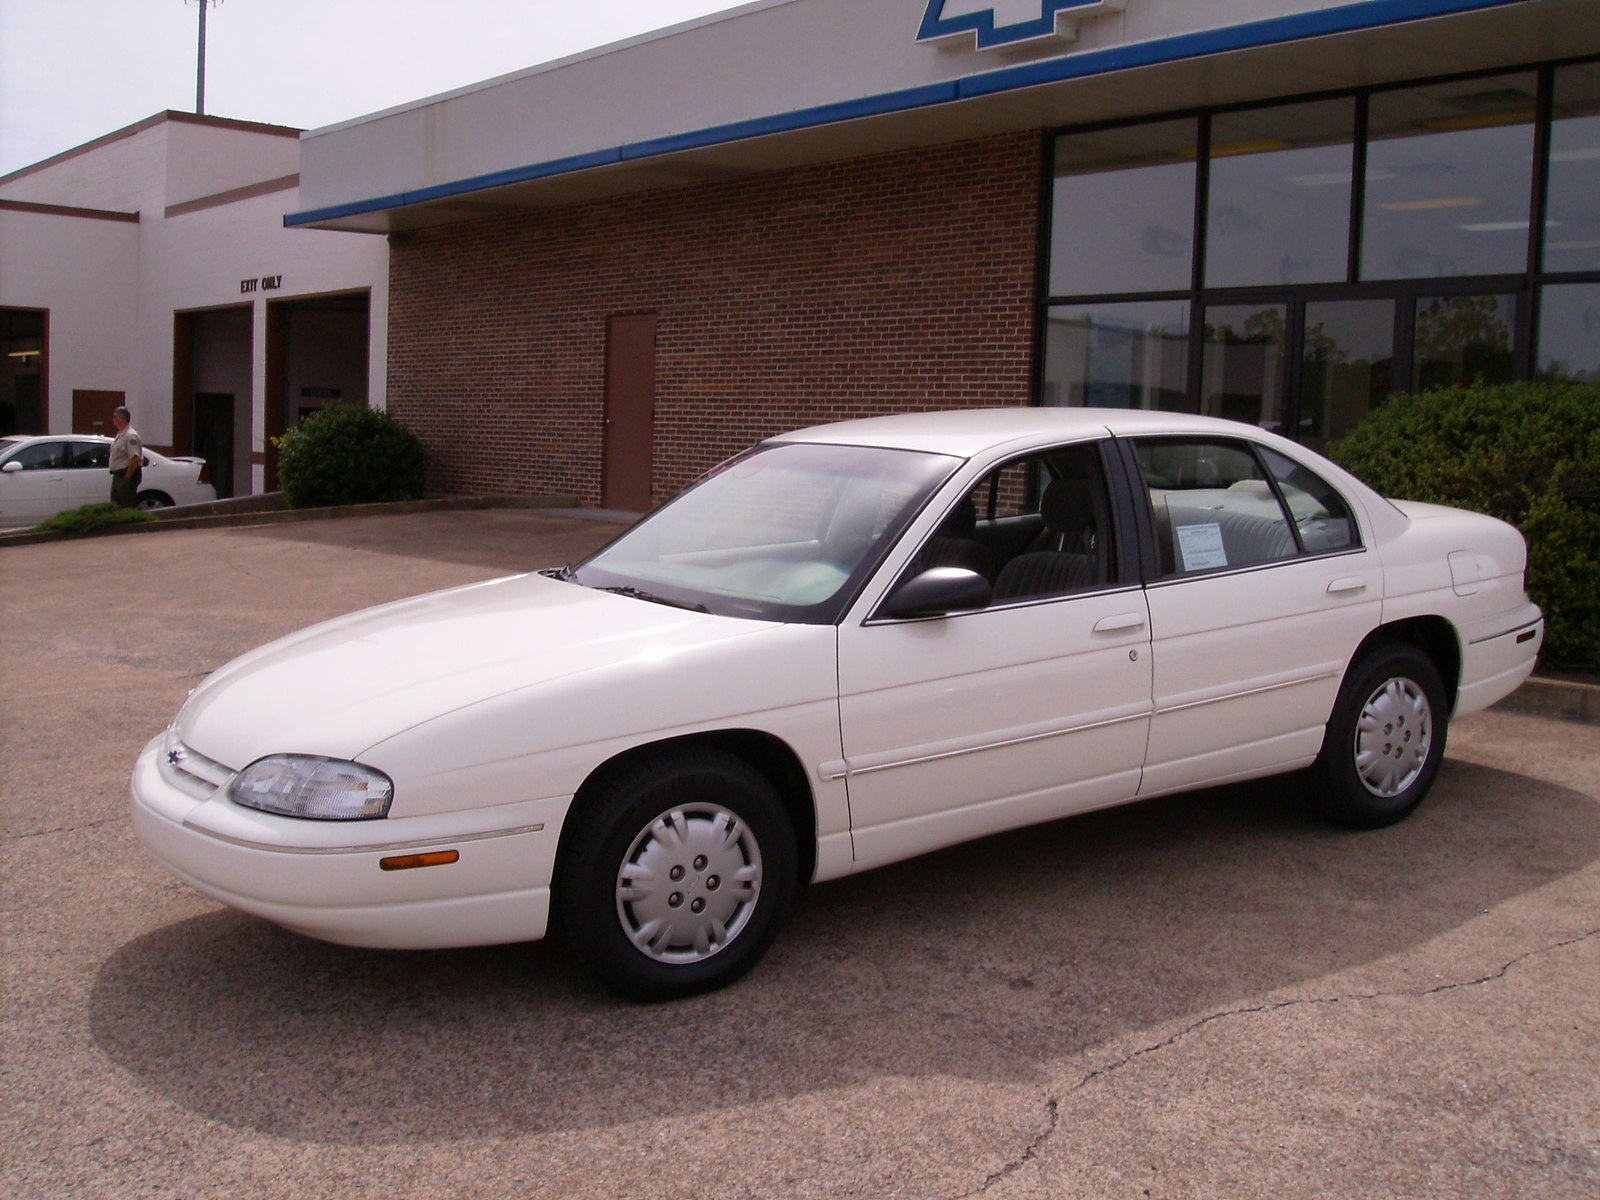 1997 Chevrolet Lumina 4 Dr LS Sedan picture, exterior